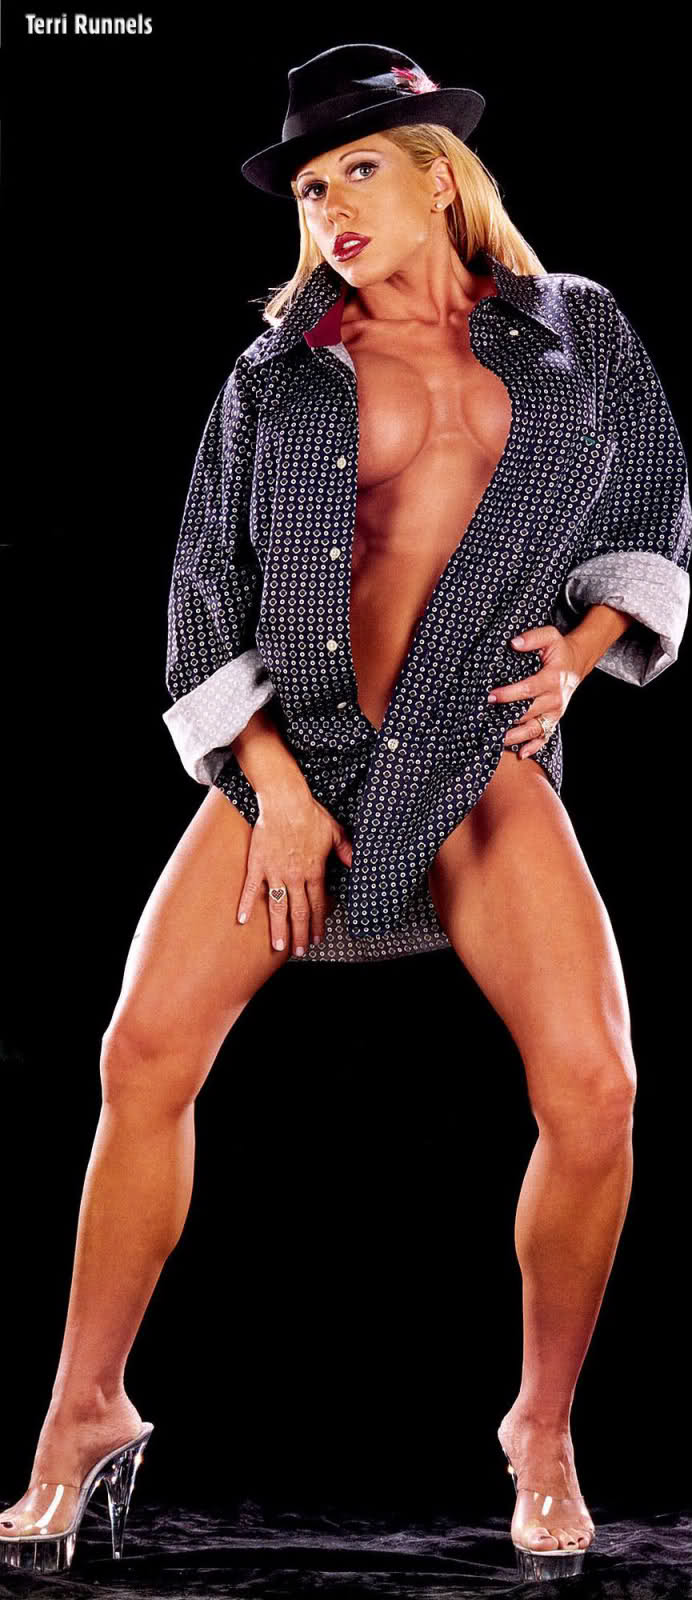 Terri runnels fucking naked films